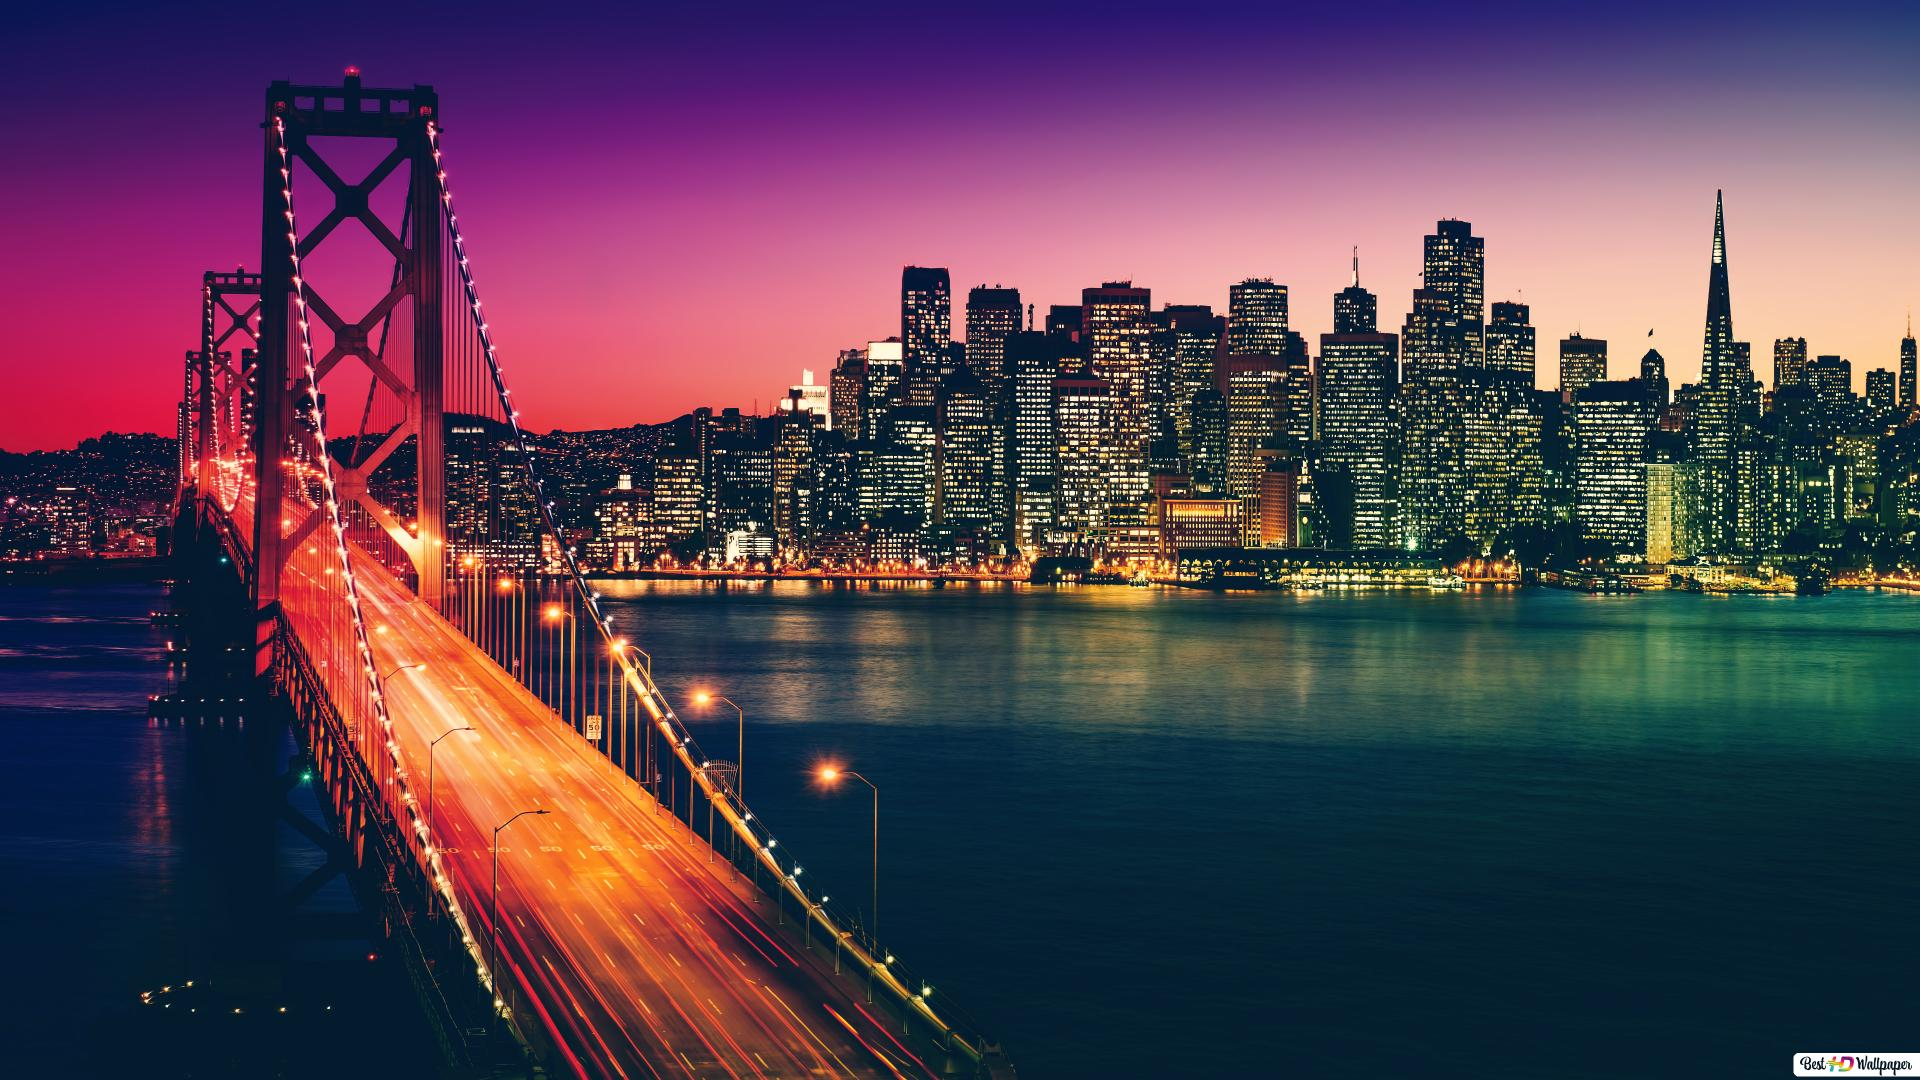 The Golden Gate San Francisco Colorful Night Hd Wallpaper Download